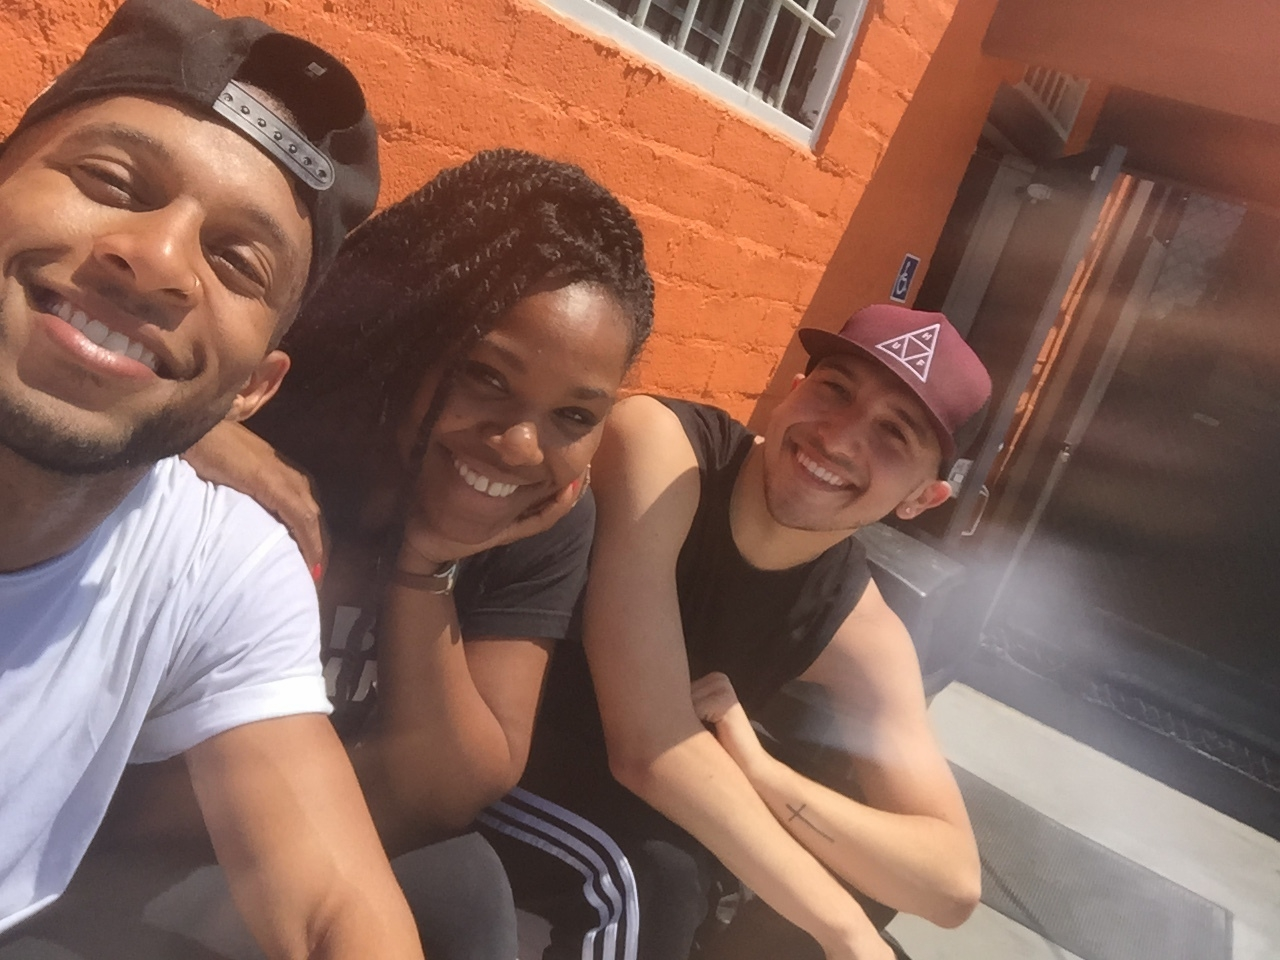 Rehearsal with two of my favorite dancers, Denzel and Guero.